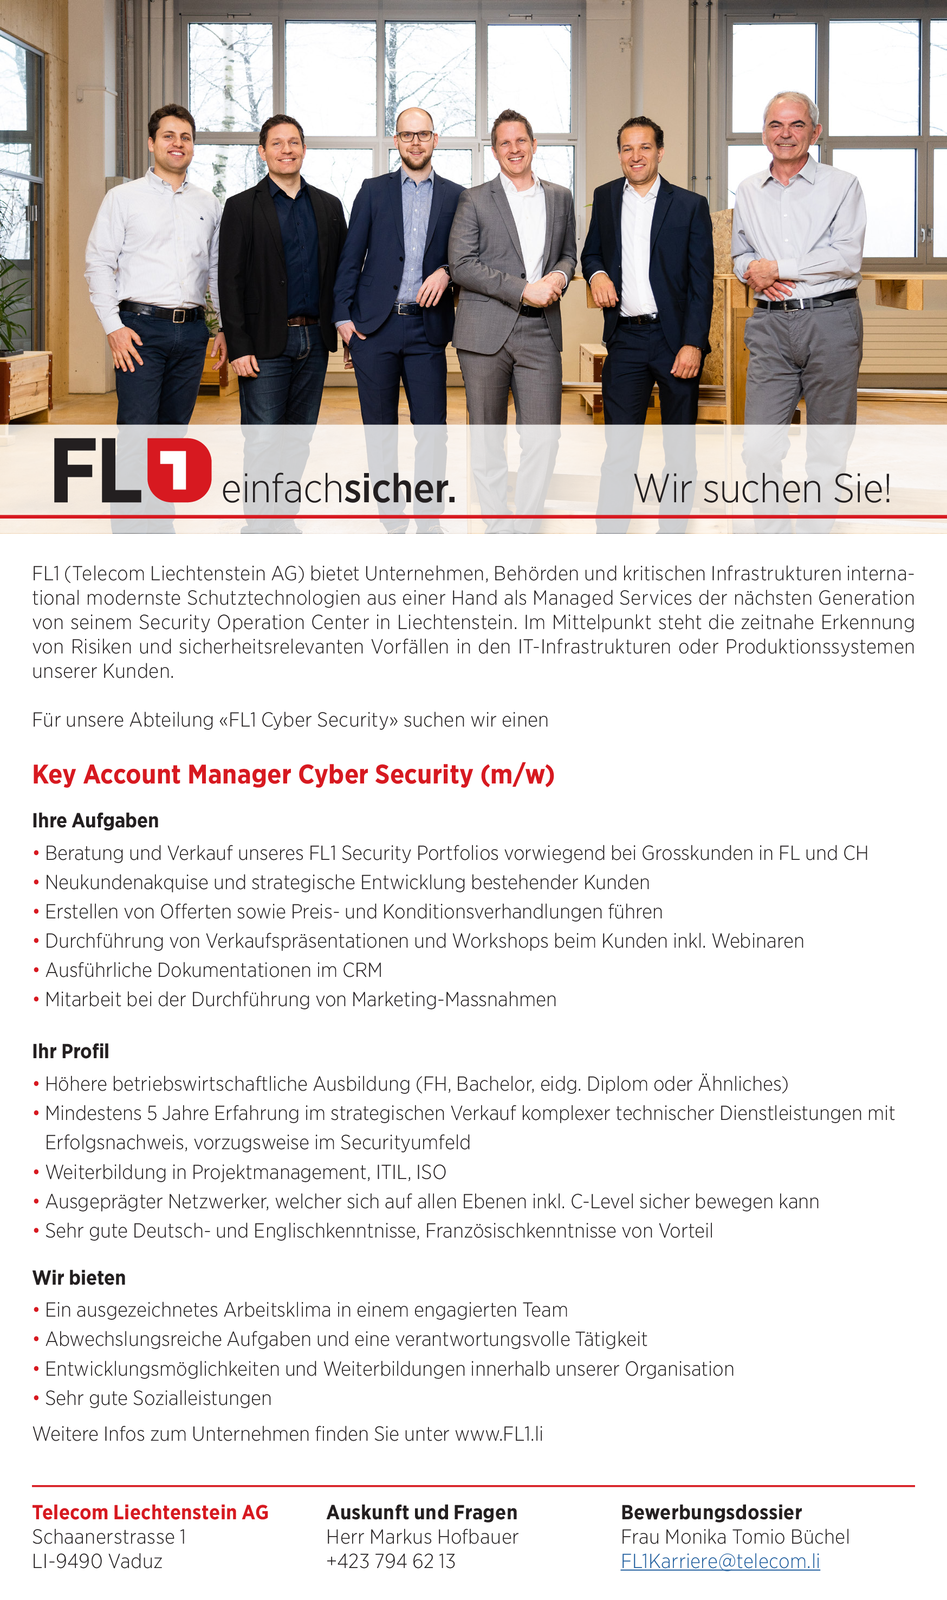 Key Account Manager Cyber Security (m/w)